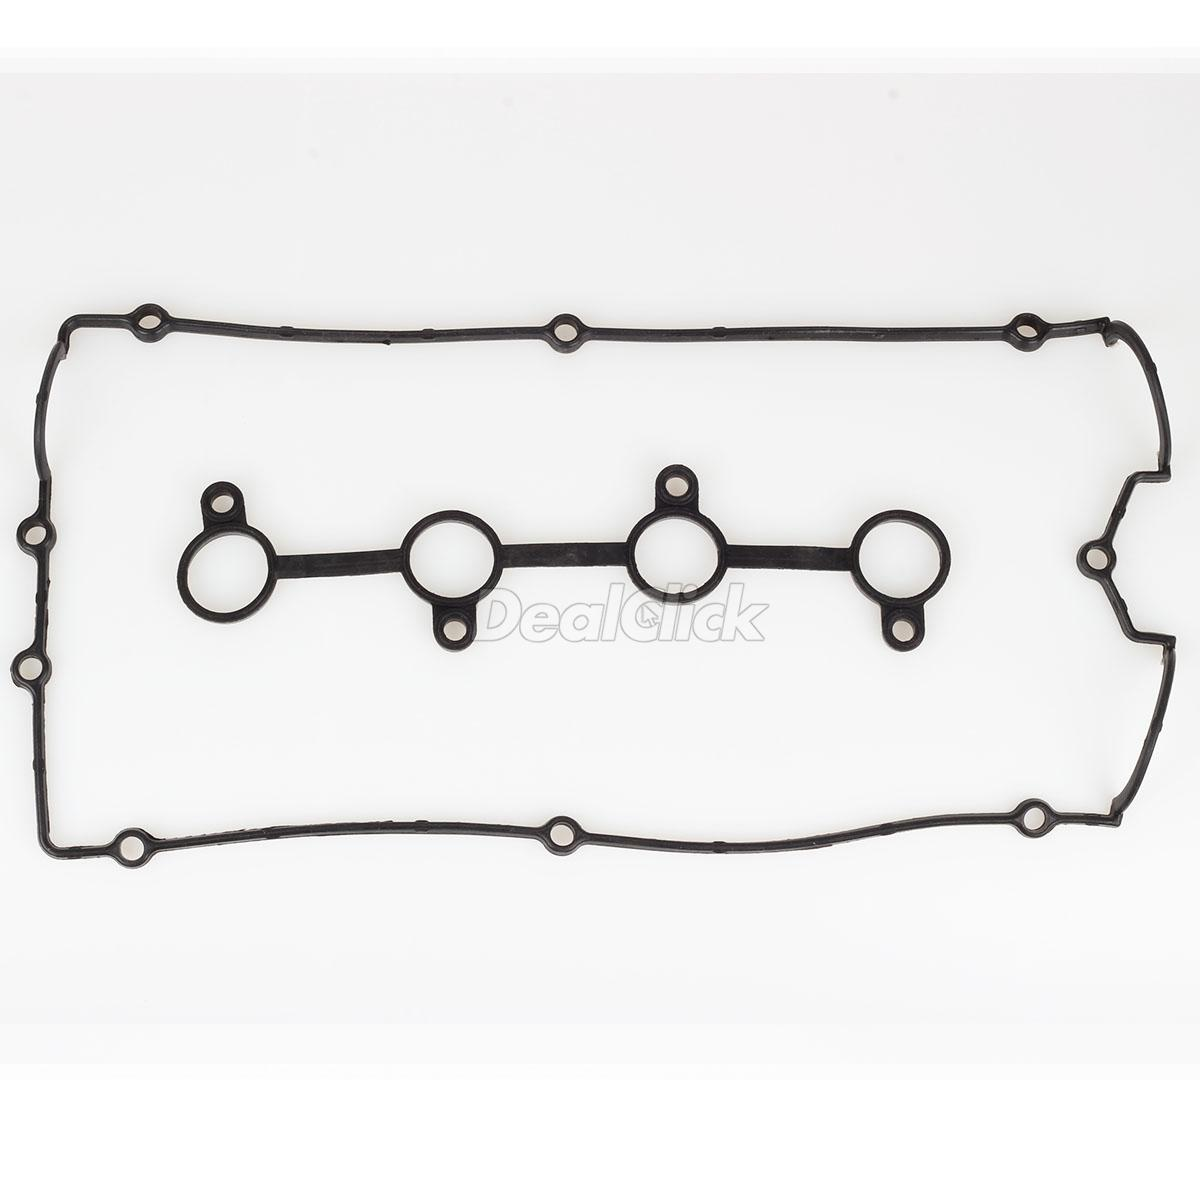 For HYUNDAI SONATA 2.4L Cylinder Valve Cover Gaskets